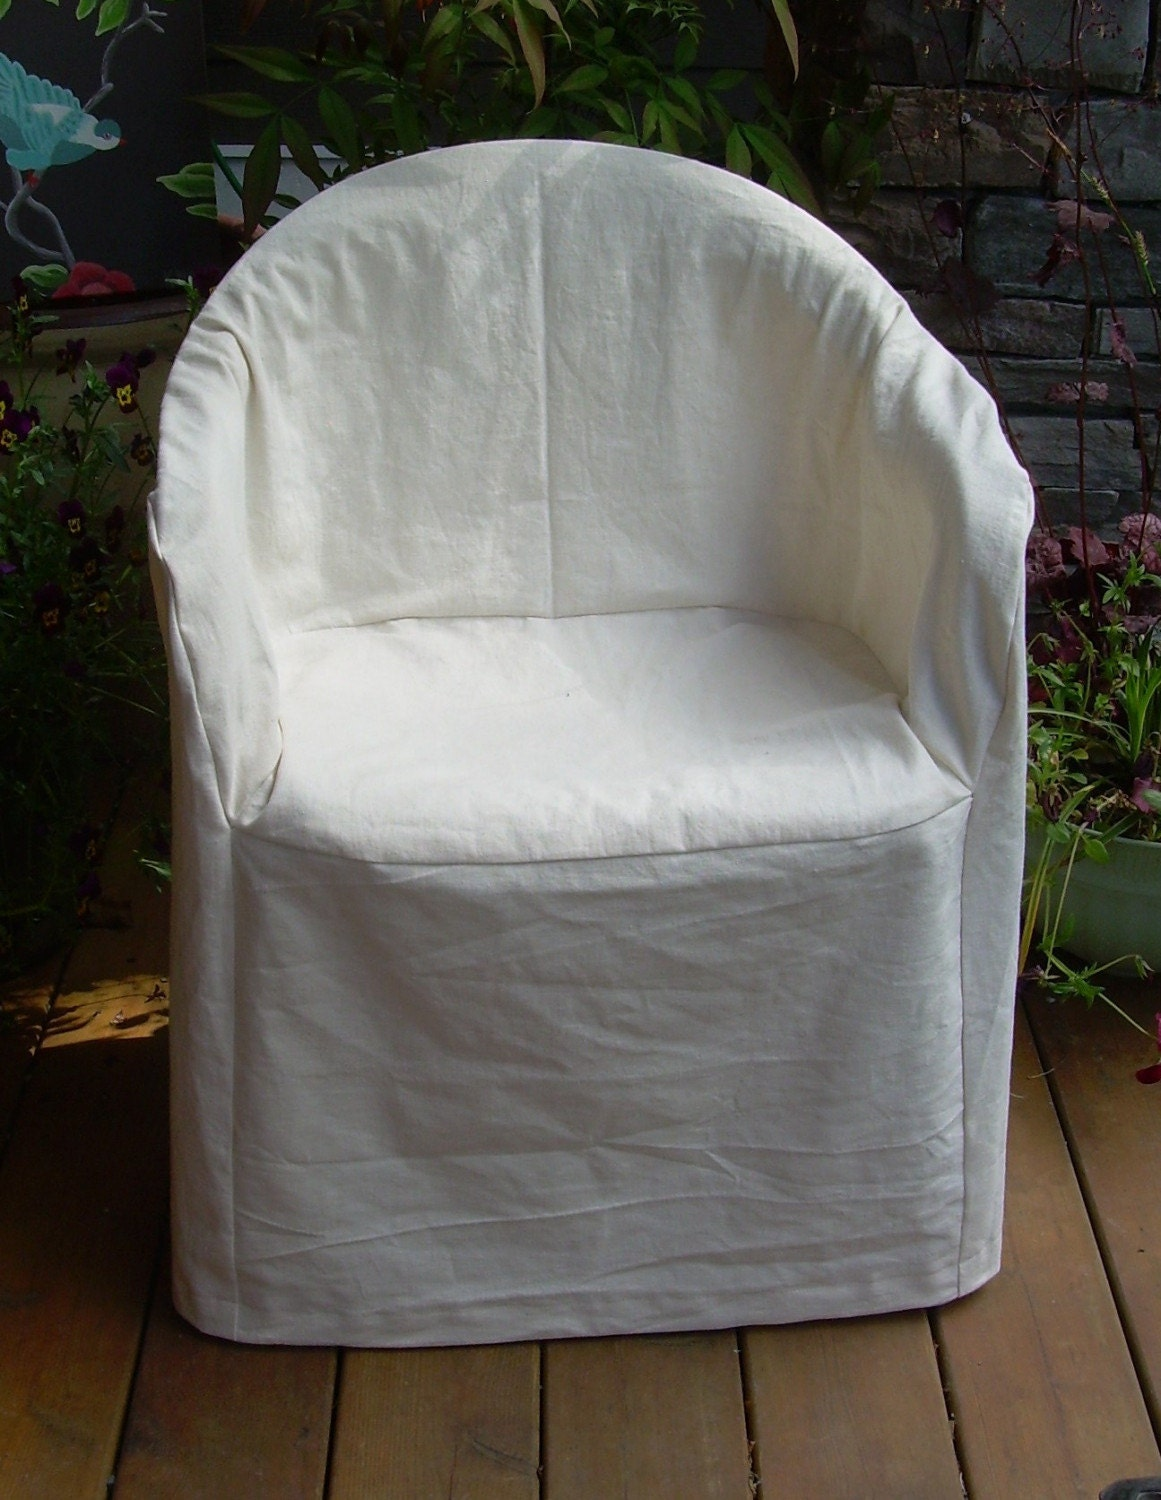 hempcotton slipcover for outdoor plastic chair 1161x1500 furniture covers chairs r